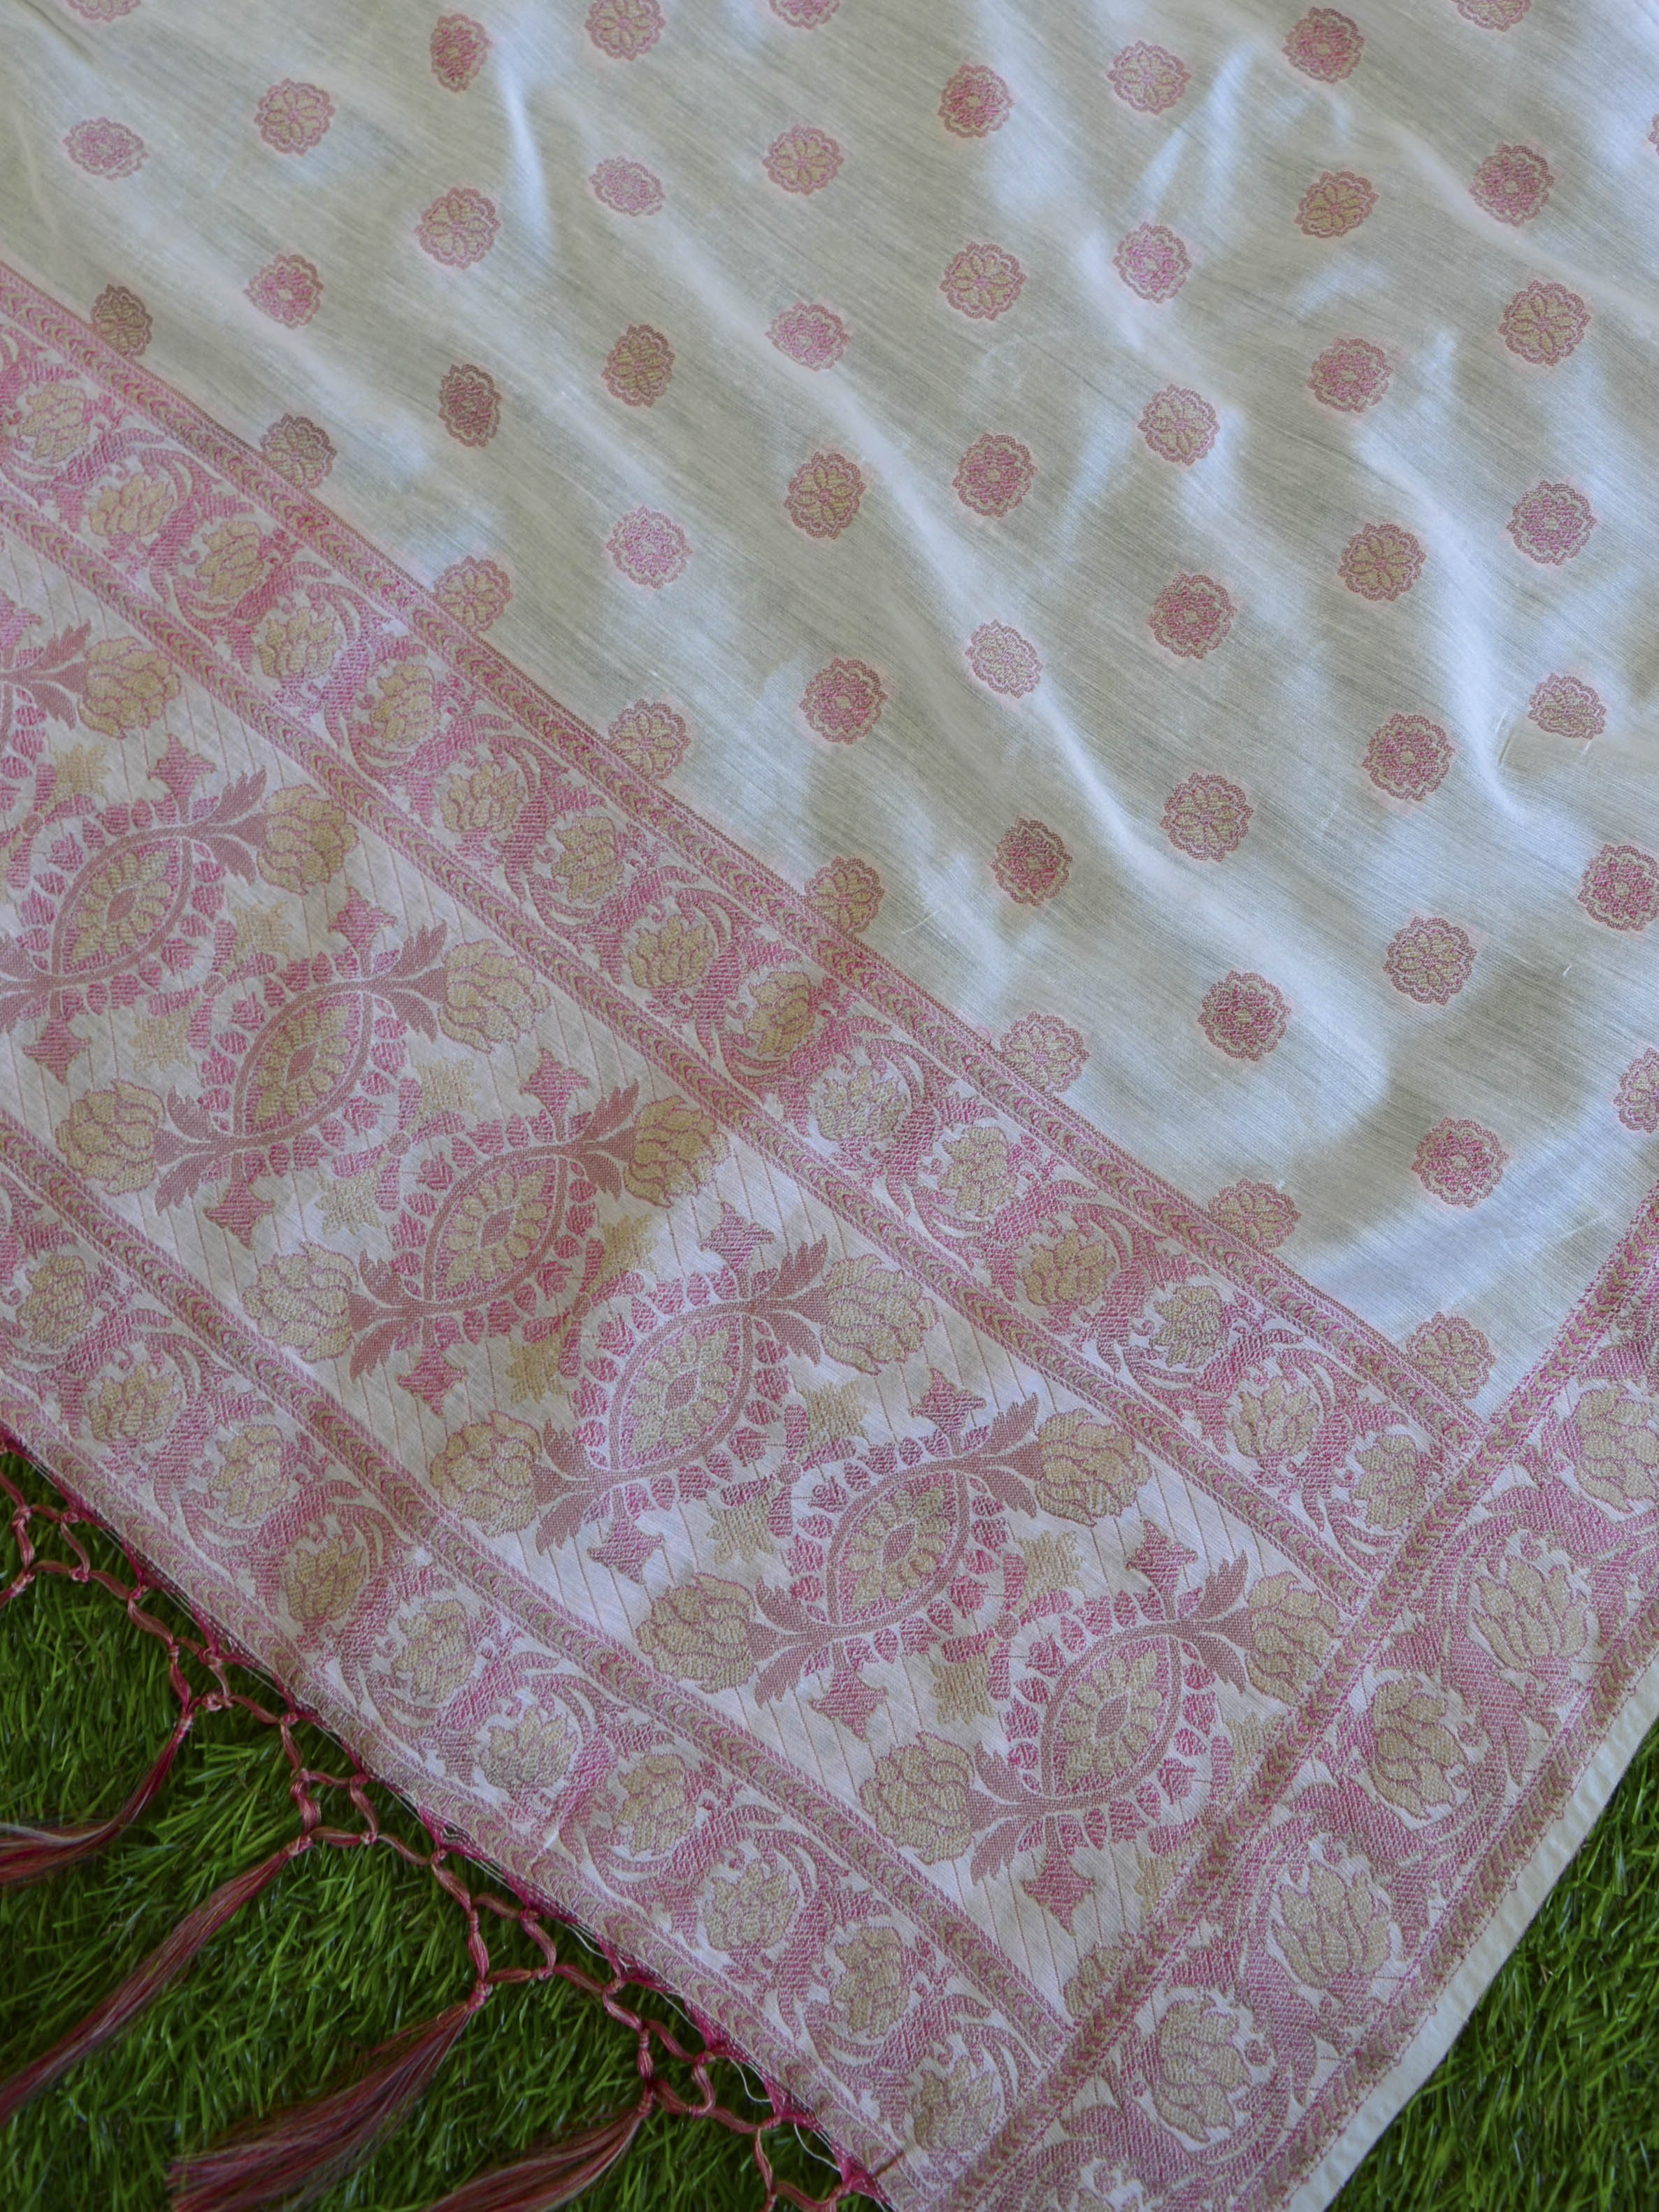 Banarasee Salwar Kameez Soft Cotton Silk Resham Woven Fabric With Paisley Design -Off White